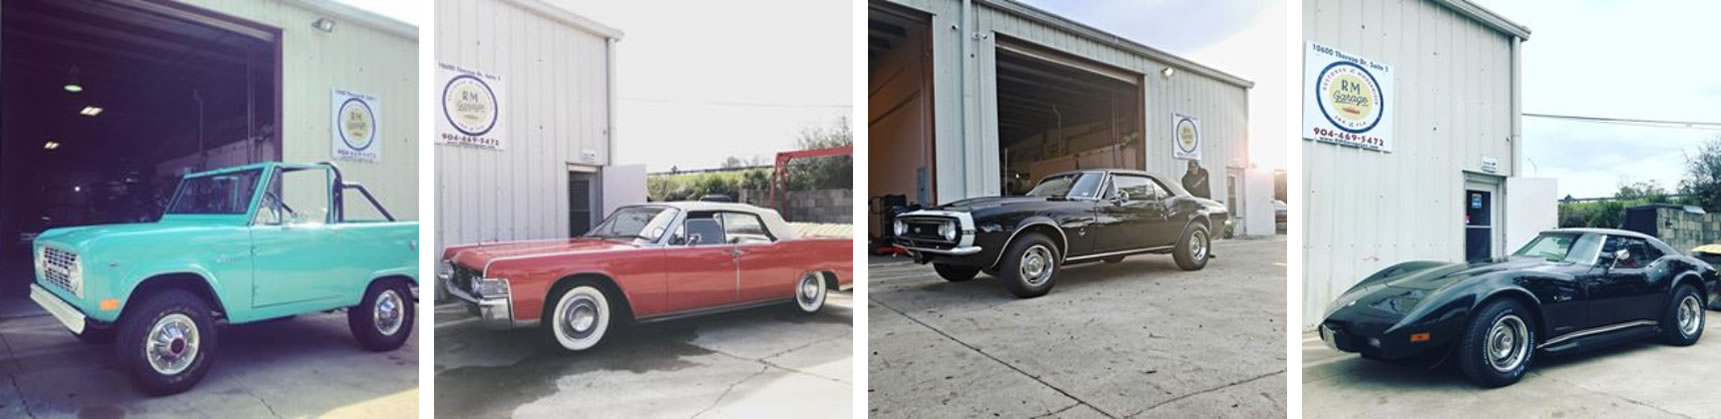 Gallery of four pictures, each of a different car